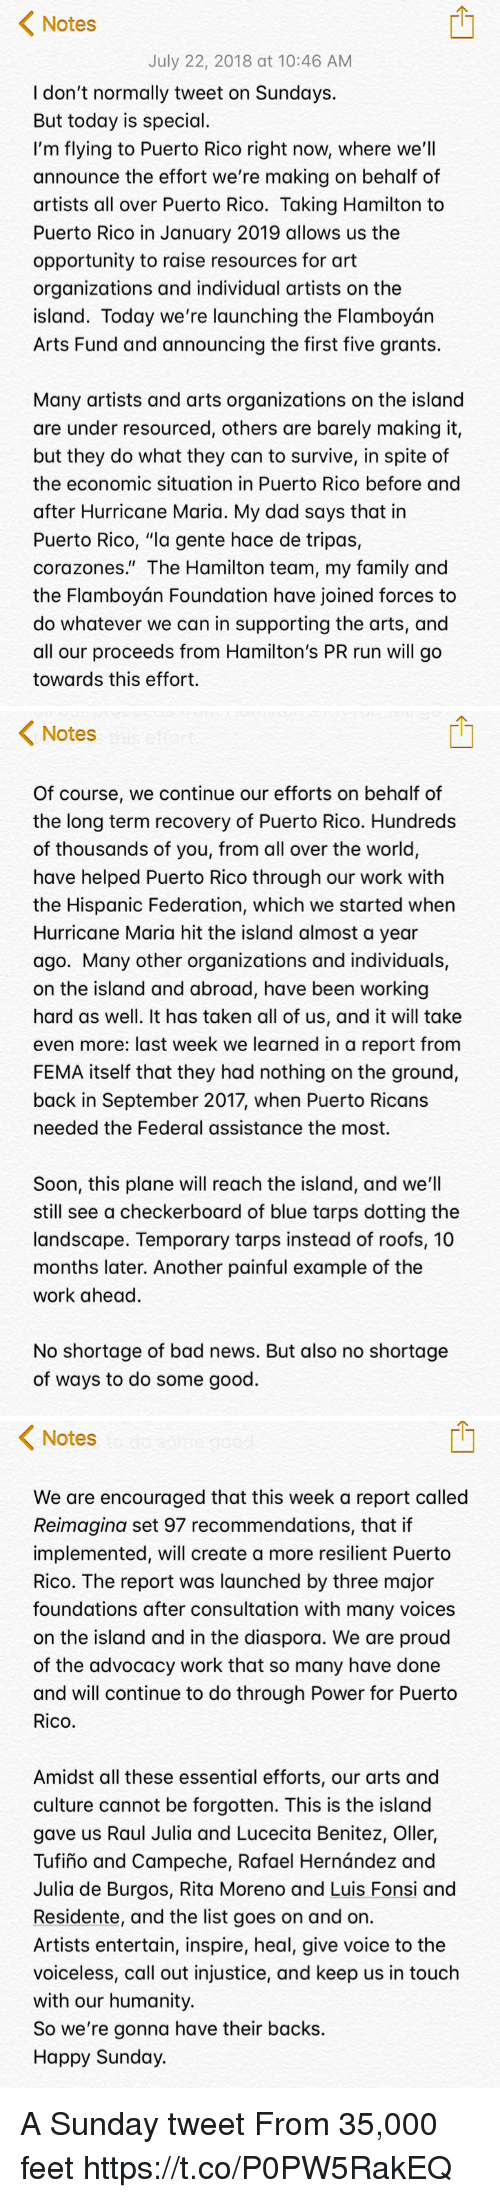 "Bad, Dad, and Family: Notes  July 22, 2018 at 10:46 AM  I don't normally tweet on Sundays.  But today is special.  I'm flying to Puerto Rico right now, where we'll  announce the effort we're making on behalf of  artists all over Puerto Rico. Taking Hamilton to  Puerto Rico in January 2019 allows us the  opportunity to raise resources for art  organizations and individual artists on the  island. Today we're launching the Flamboyán  Arts Fund and announcing the first five grants.  Many artists and arts organizations on the island  are under resourced, others are barely making it,  but they do what they can to survive, in spite of  the economic situation in Puerto Rico before and  after Hurricane Maria. My dad says that in  Puerto Rico, ""la gente hace de tripas,  corazones."" The Hamilton team, my family and  the Flamboyán Foundation have joined forces to  do whatever we can in supporting the arts, and  all our proceeds from Hamilton's PR run will go  towards this effort.   Notes  Of course, we continue our efforts on behalf of  the long term recovery of Puerto Rico. Hundreds  of thousands of you, from all over the world,  have helped Puerto Rico through our work with  the Hispanic Federation, which we started when  Hurricane Maria hit the island almost a year  ago. Many other organizations and individuals,  on the island and abroad, have been working  hard as well. It has taken all of us, and it will take  even more: last week we learned in a report from  FEMA itself that they had nothing on the ground,  back in September 2017, when Puerto Ricans  needed the Federal assistance the most.  Soon, this plane will reach the island, and we'll  still see a checkerboard of blue tarps dotting the  landscape. Temporary tarps instead of roofs, 10  months later. Another painful example of the  work ahead.  No shortage of bad news. But also no shortage  of ways to do some good.   < Notes  We are encouraged that this week a report called  Reimagina set 97 recommendations, that if  implemented, will create a more resilient Puerto  Rico. The report was launched by three major  foundations after consultation with many voices  on the island and in the diaspora. We are proud  of the advocacy work that so many have done  and will continue to do through Power for Puerto  Rico.  Amidst all these essential efforts, our arts and  culture cannot be forgotten. This is the island  gave us Raul Julia and Lucecita Benitez, Oller,  Tufiño and Campeche, Rafael Hernández and  Julia de Burgos, Rita Moreno and Luis Fonsi and  Residente, and the list goes on and on.  Artists entertain, inspire, heal, give voice to the  voiceless, call out injustice, and keep us in touch  with our humanity.  So we're gonna have their backs.  Happy Sunday. A Sunday tweet From 35,000 feet https://t.co/P0PW5RakEQ"